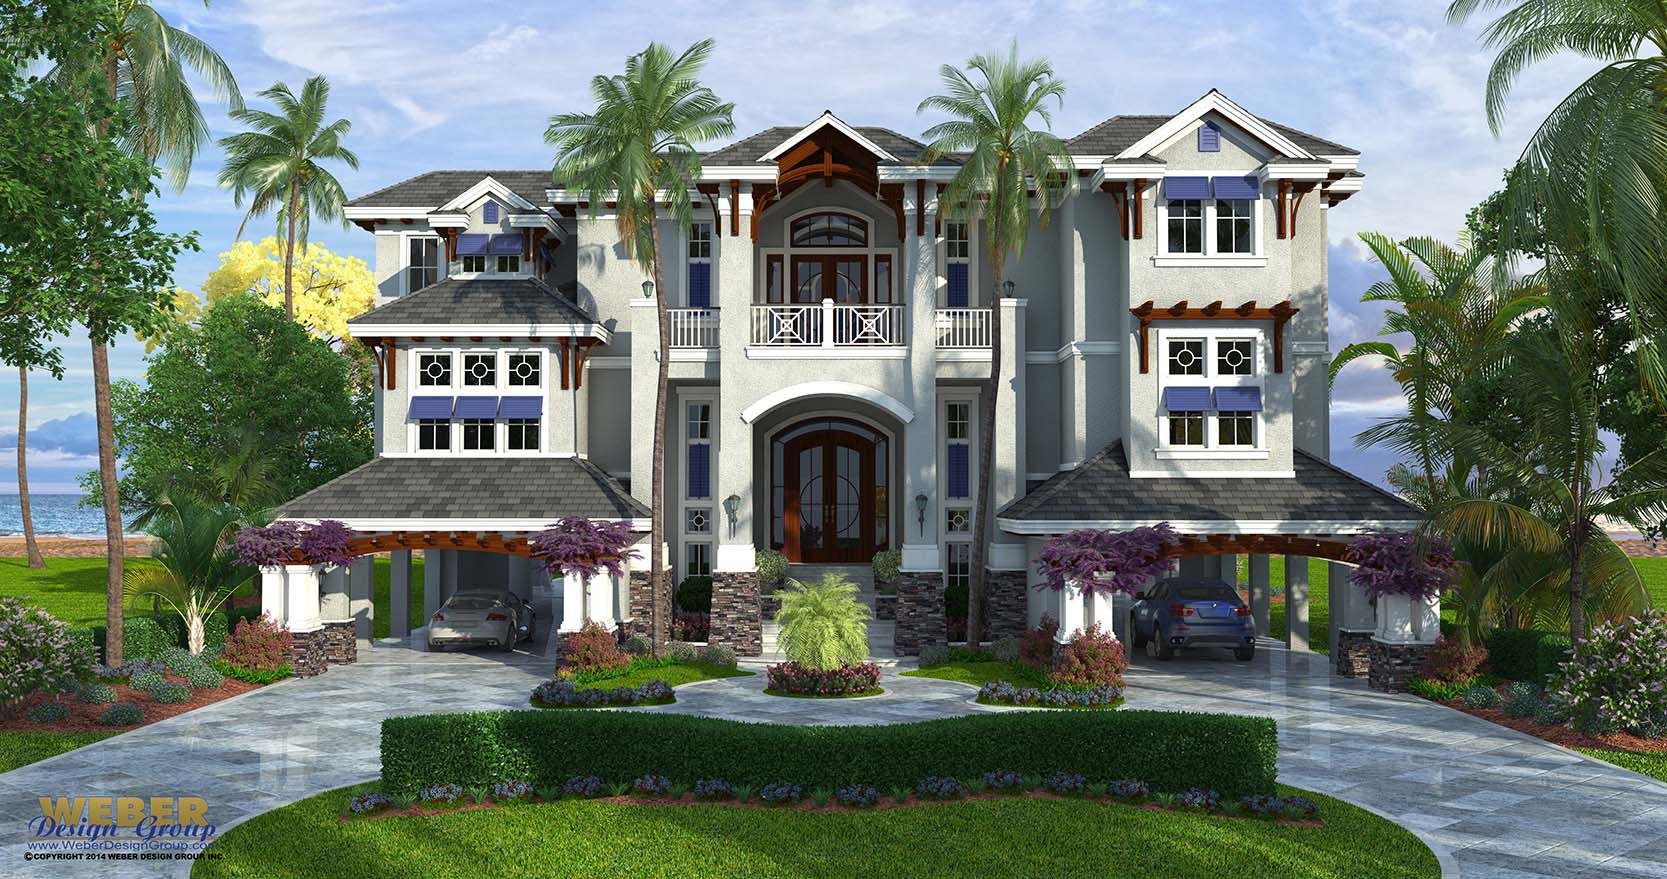 Coastal Style House Plan, 3 Story Floor Plan, Outdoor Living & Pool